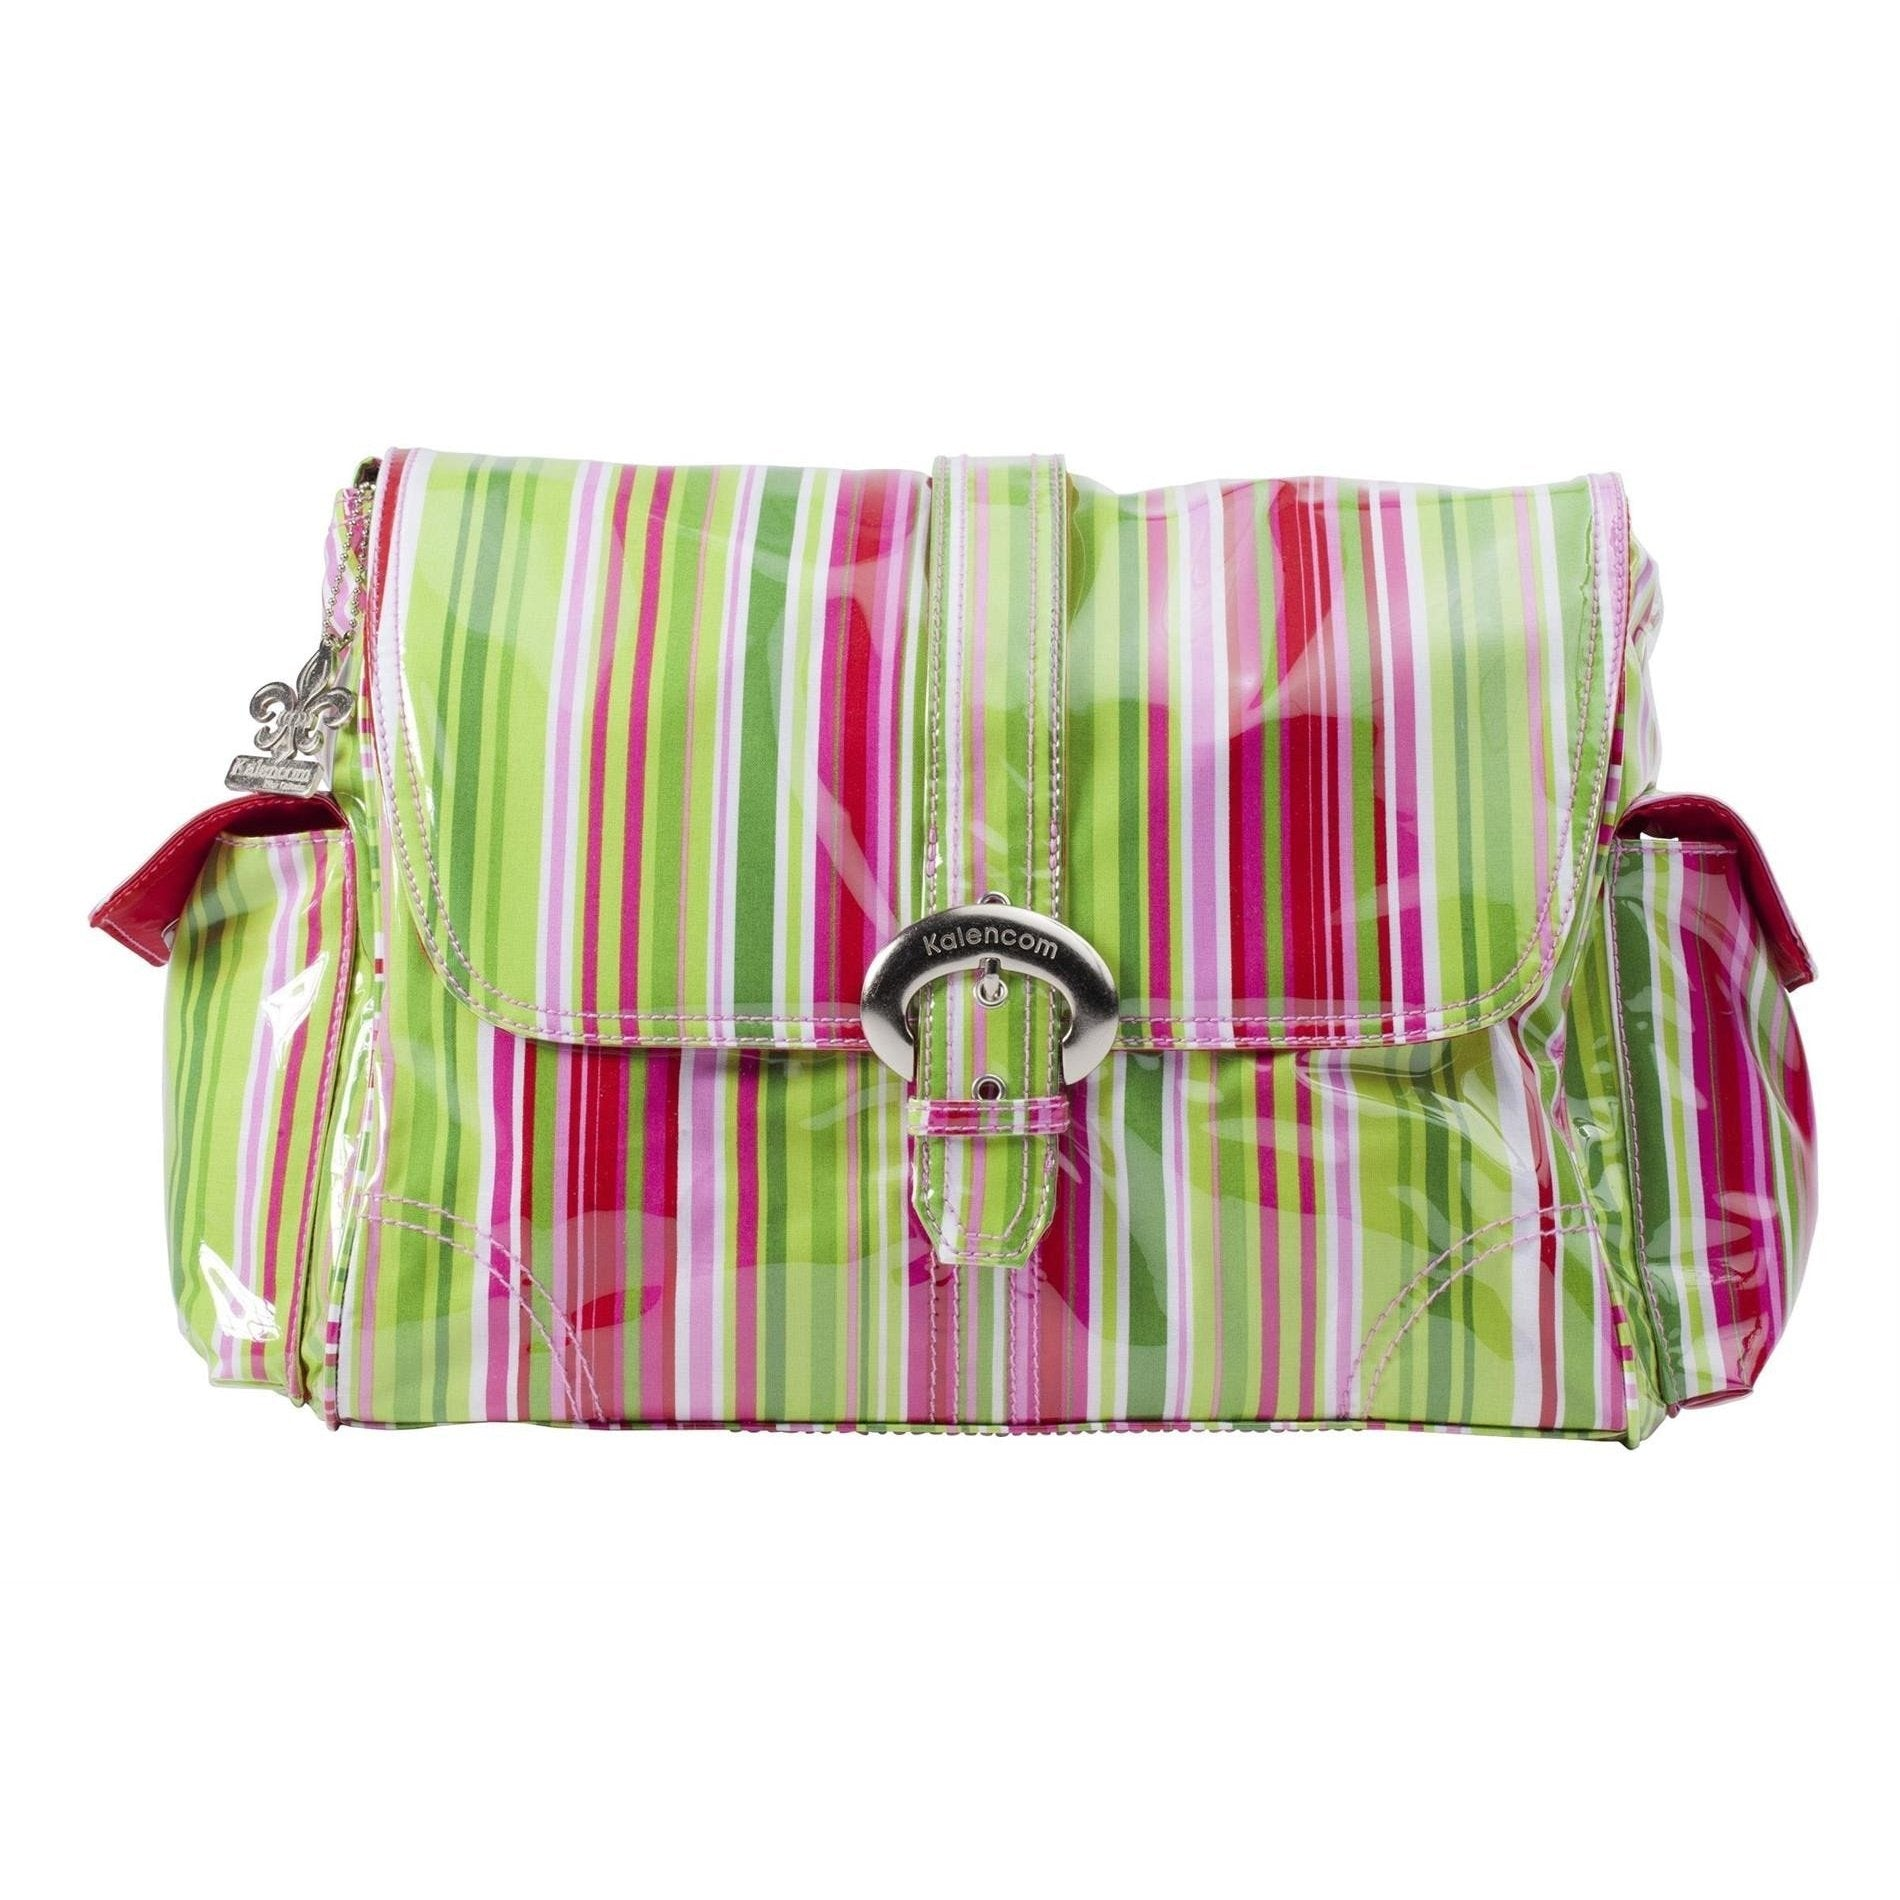 Jazz Stripes Ruby Laminated Buckle Diaper Bag | Style 2960 - Kalencom-Diaper Bags-Default-Jack and Jill Boutique